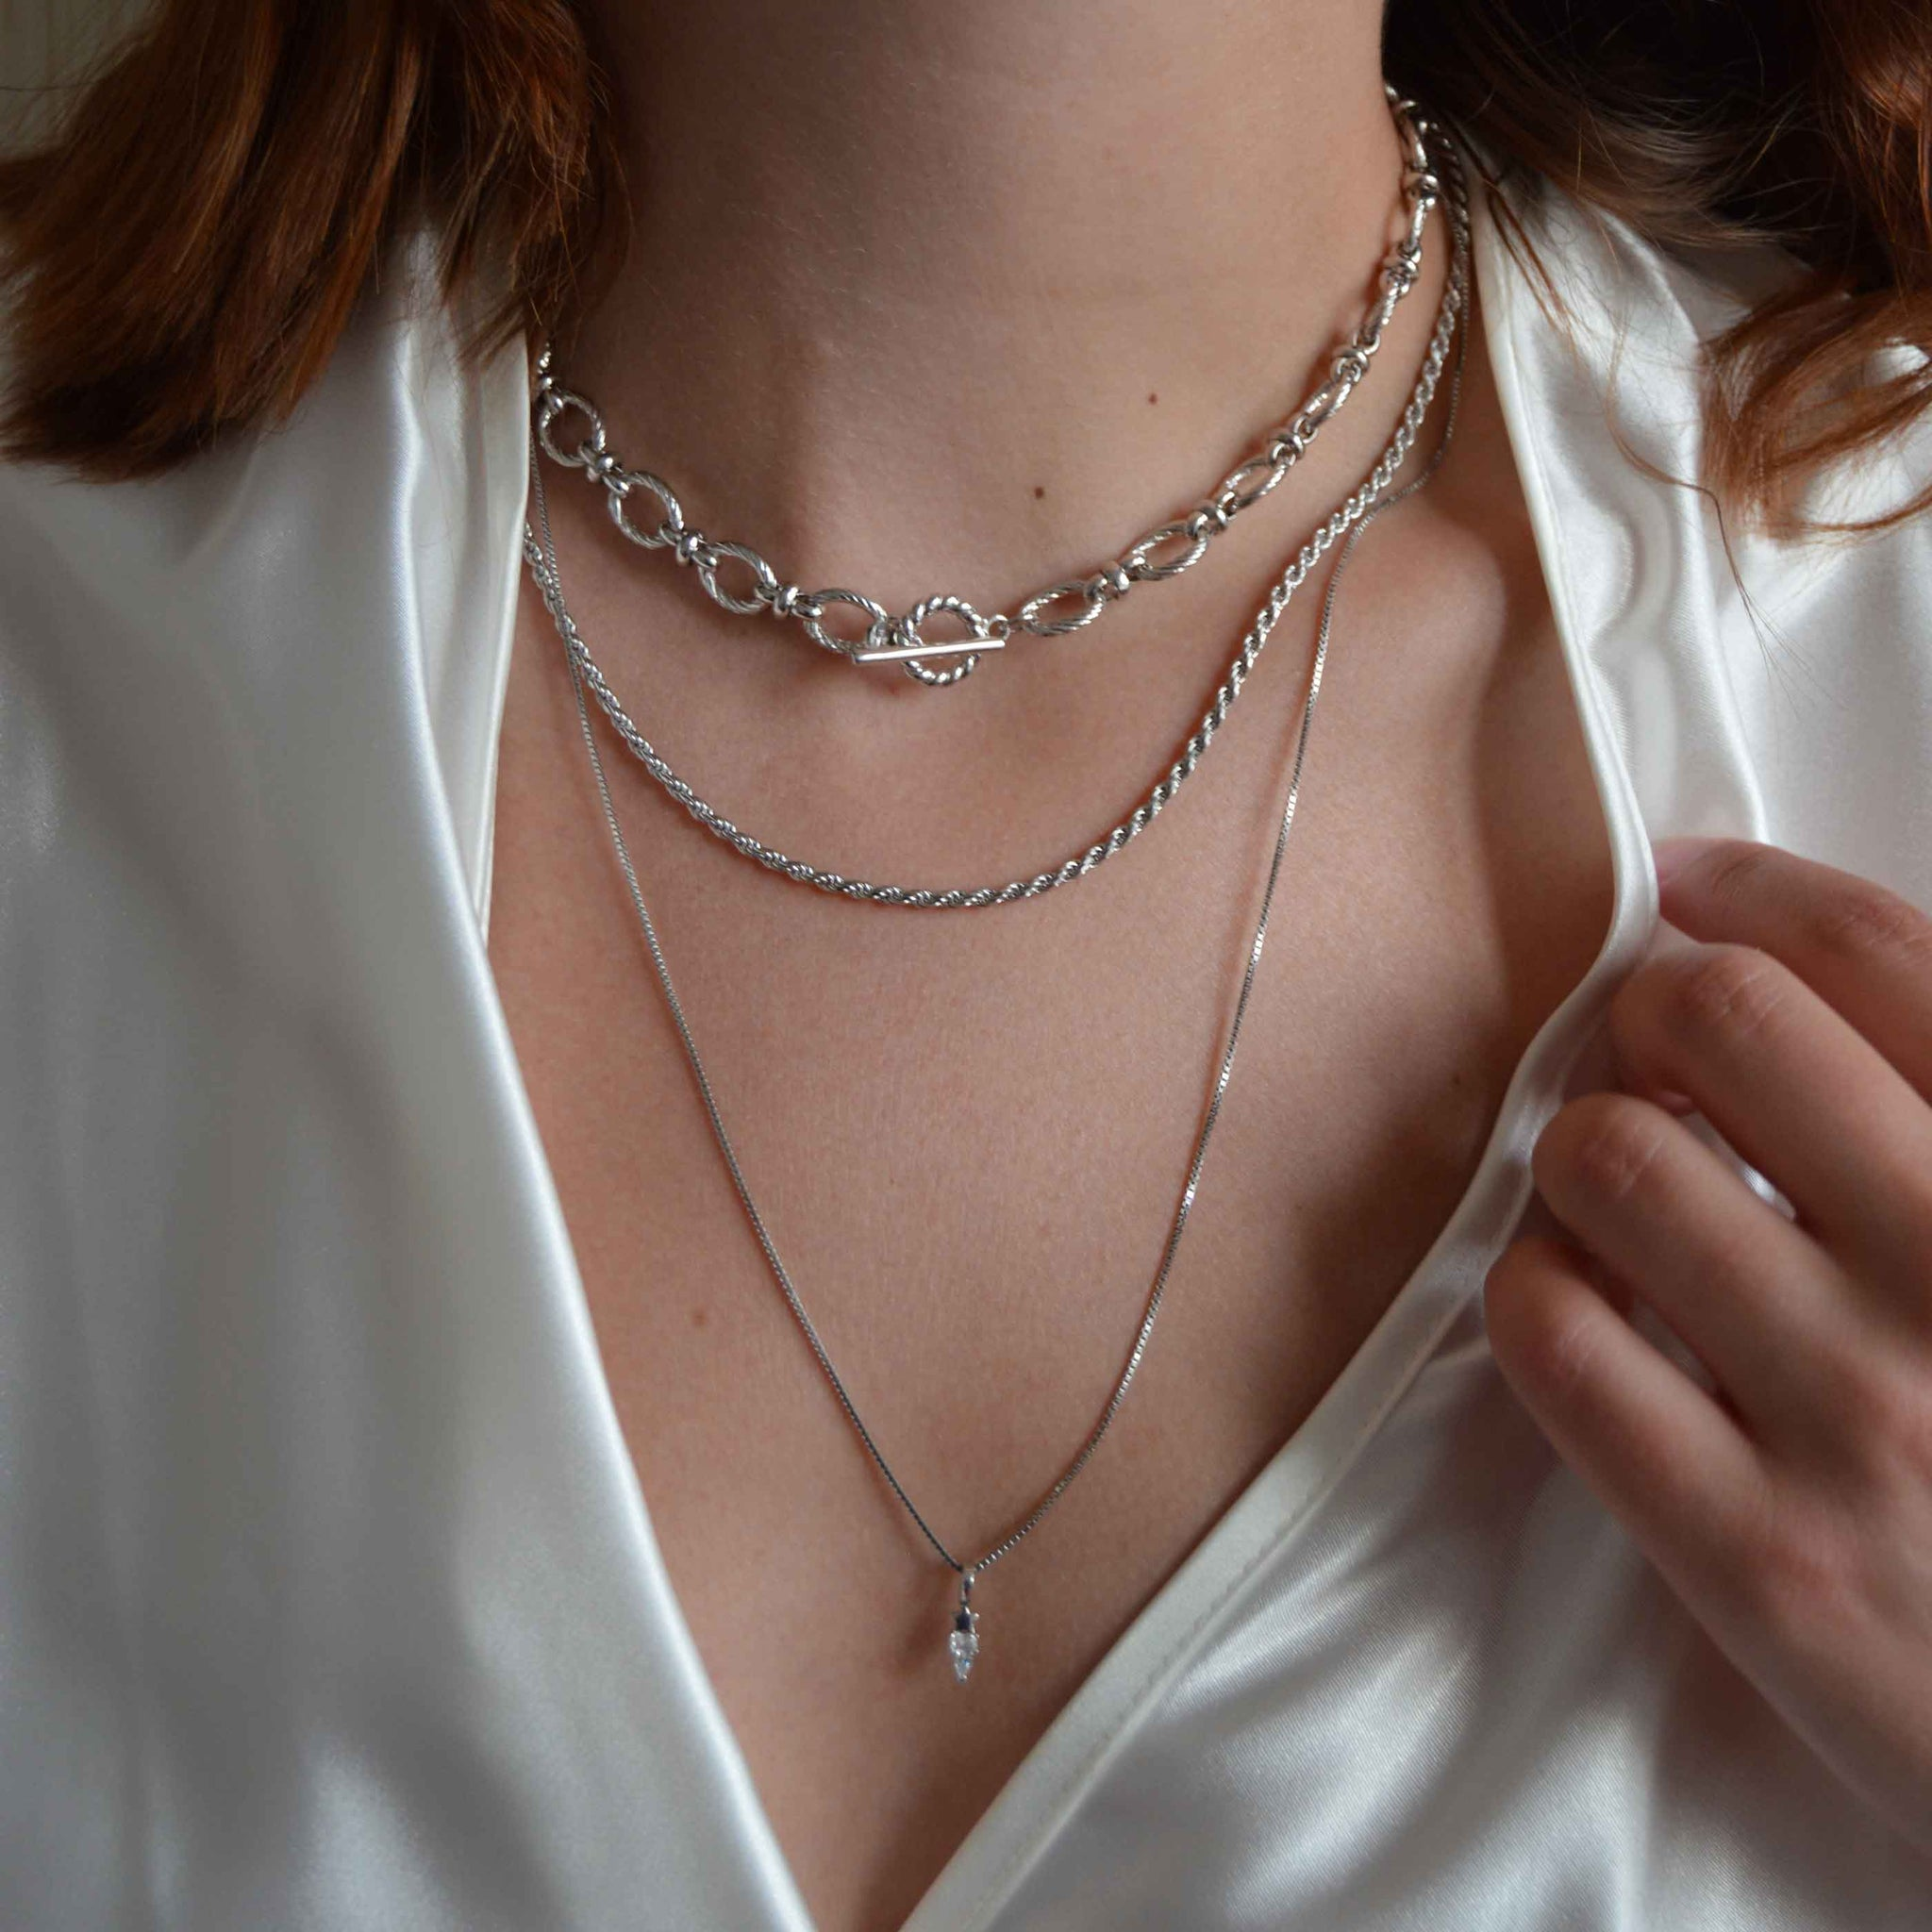 Fine Box Chain 55cm in Silver worn with chunky chain necklaces